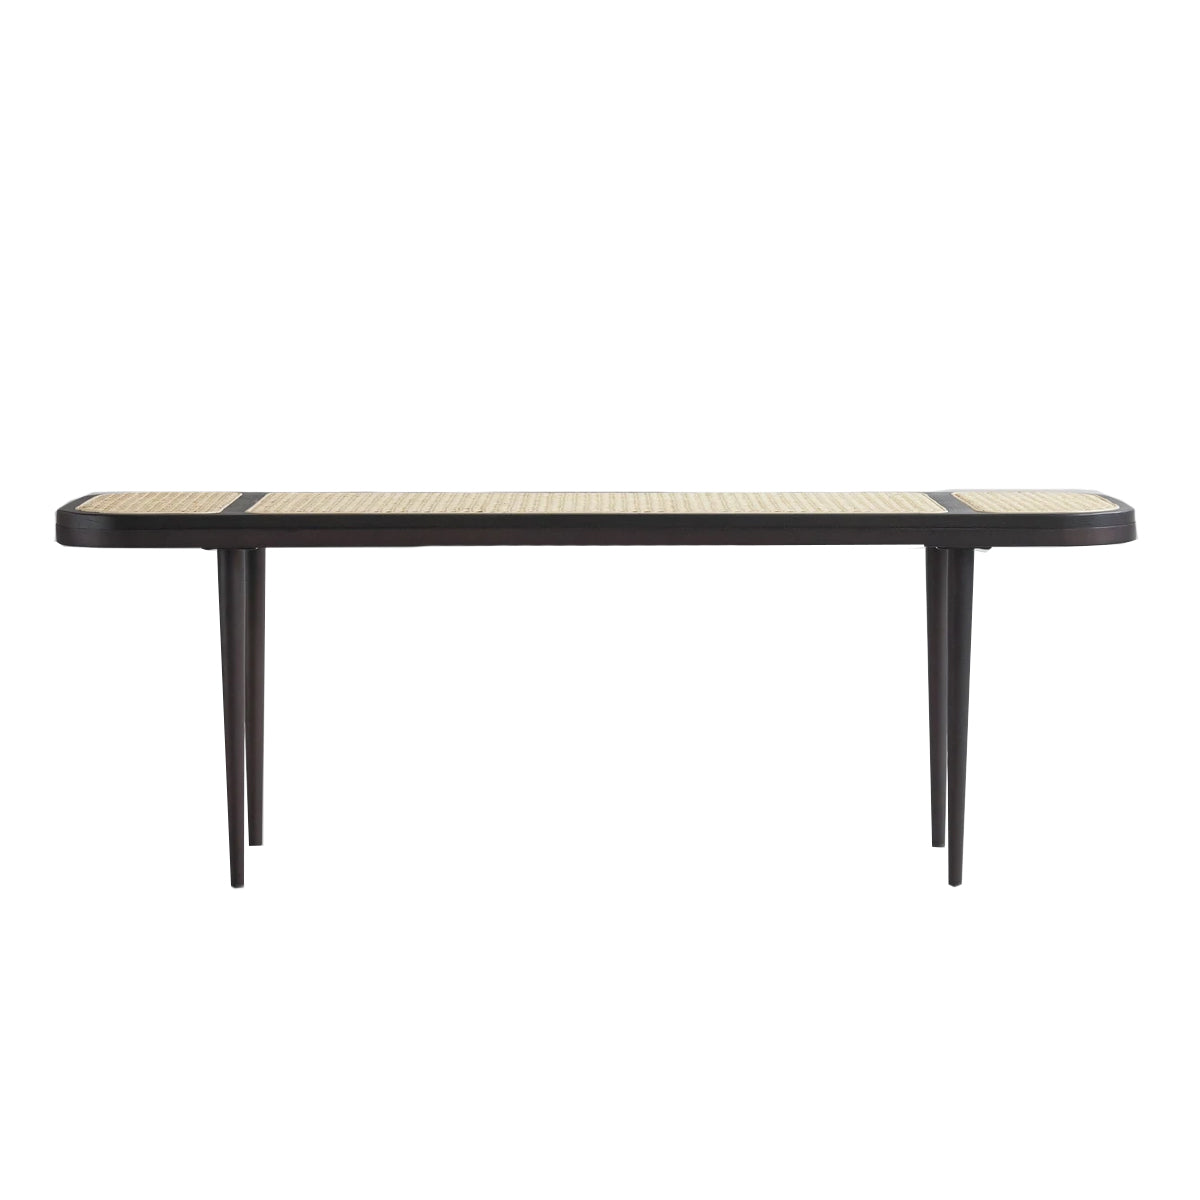 Hako Bench by 101 Copenhagen | Do Shop